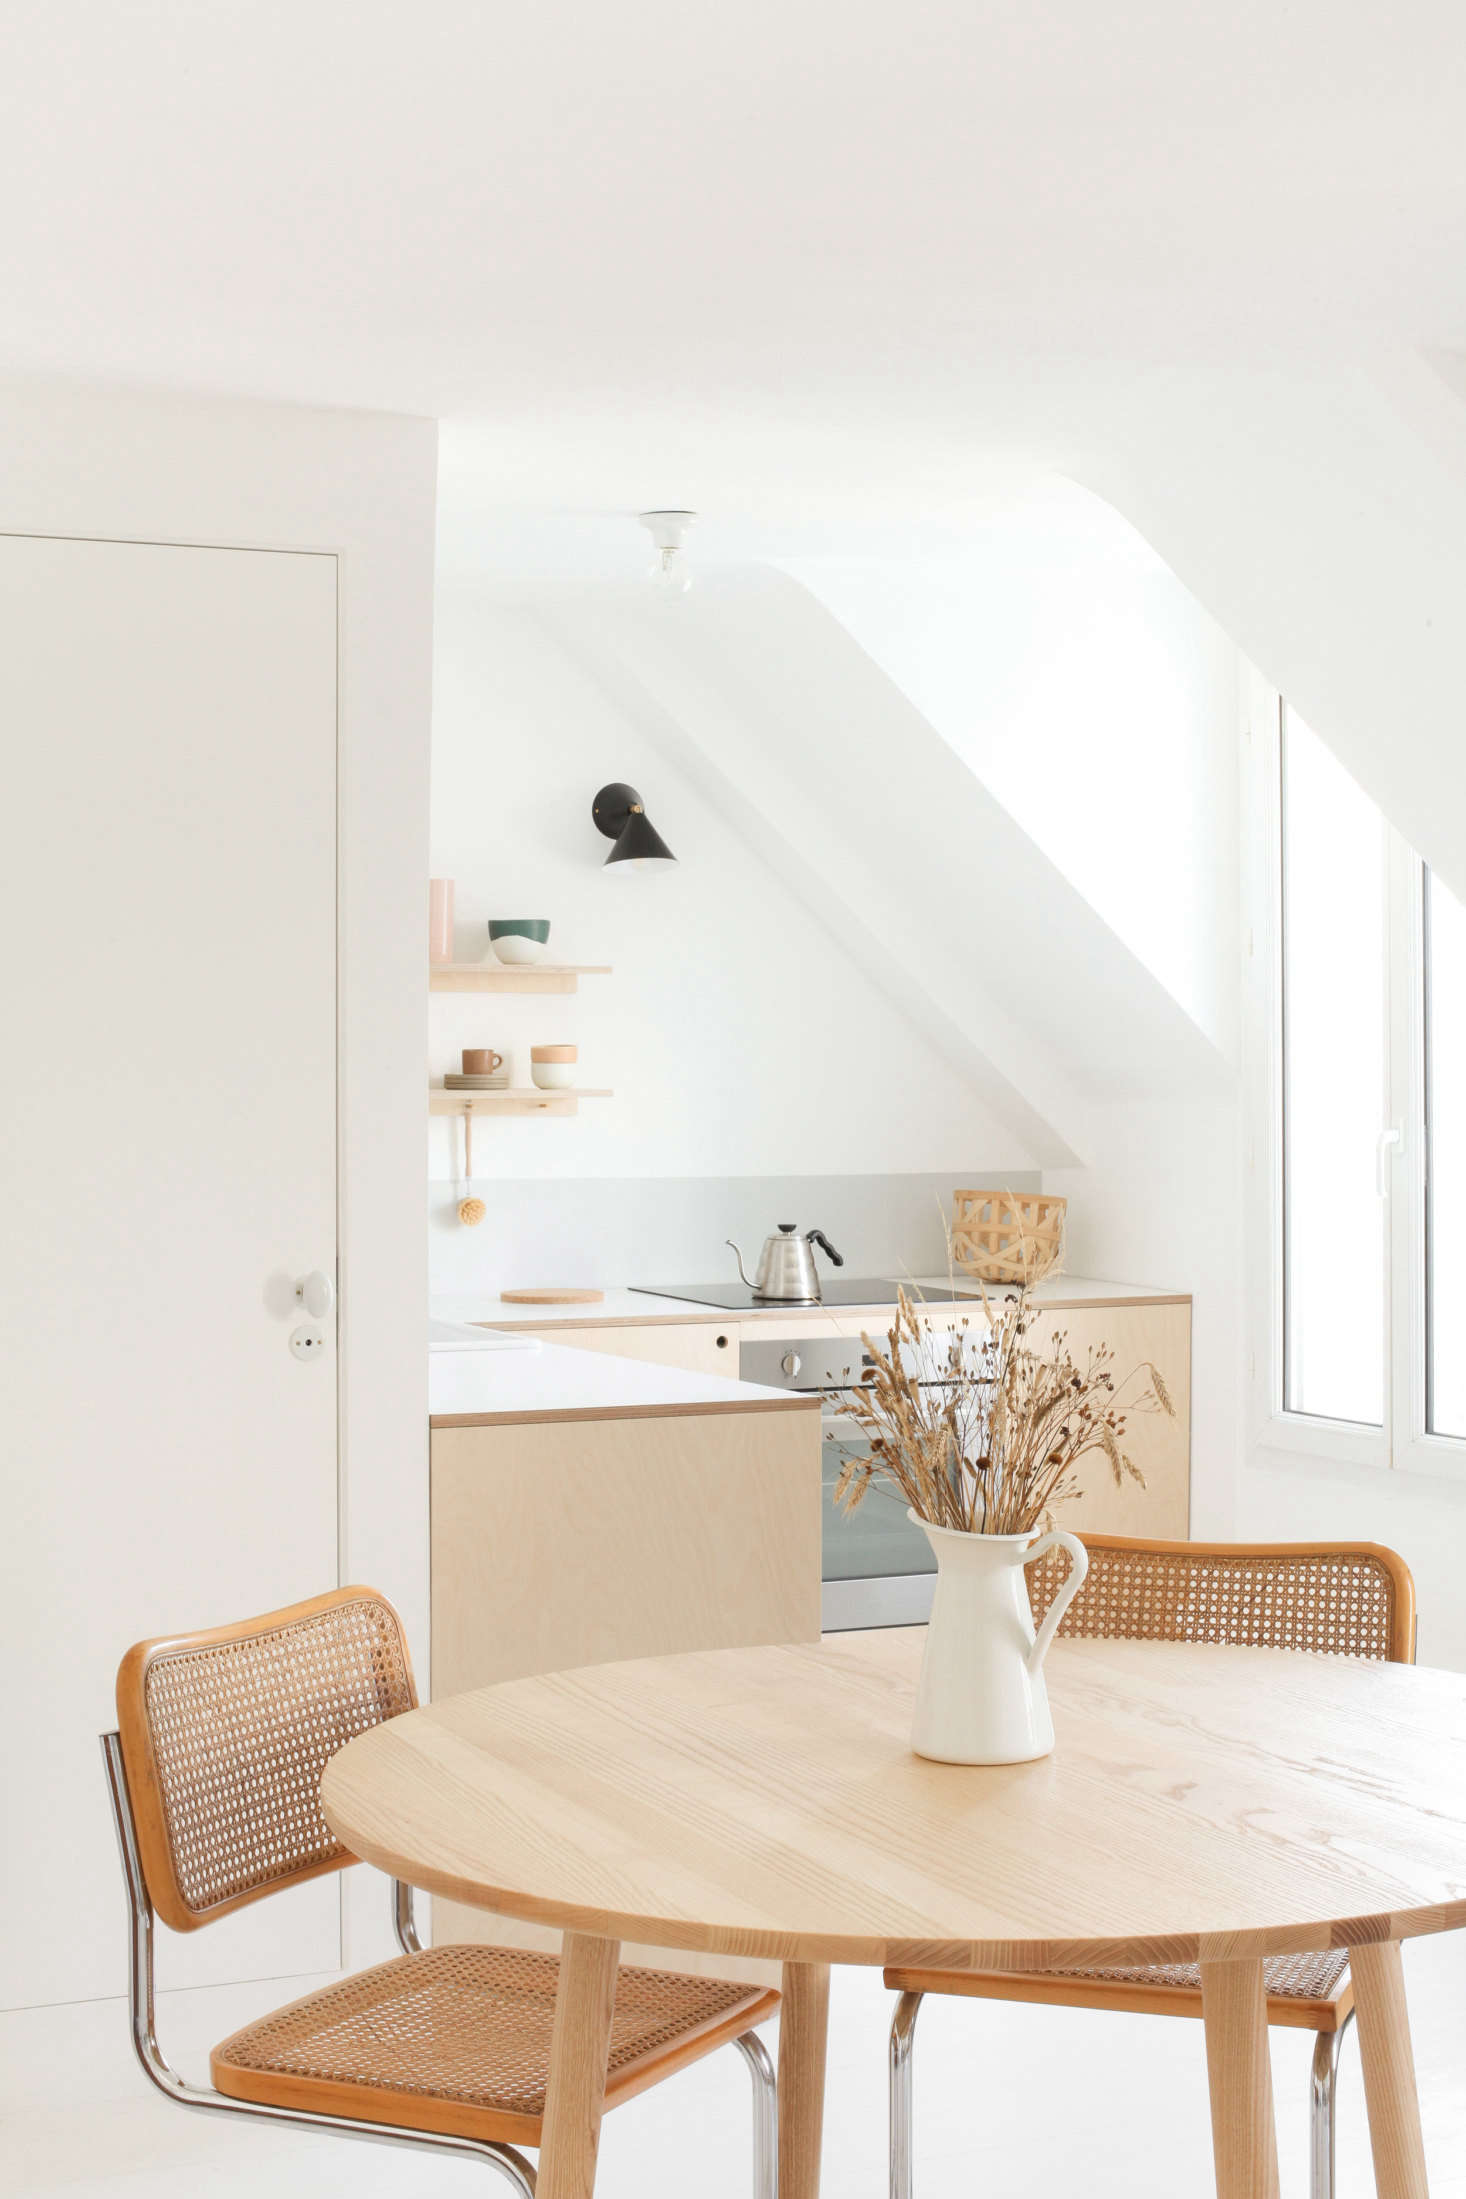 Their one splurge was the handmade dining table fromStattmann Neuemoebel (see below) paired with two vintage Cesca chairs they already had. For the full breakdown of costs see our postKitchen of the Week: Two Young Paris Architects Completely Redo Their Kitchen for Under $4,300.